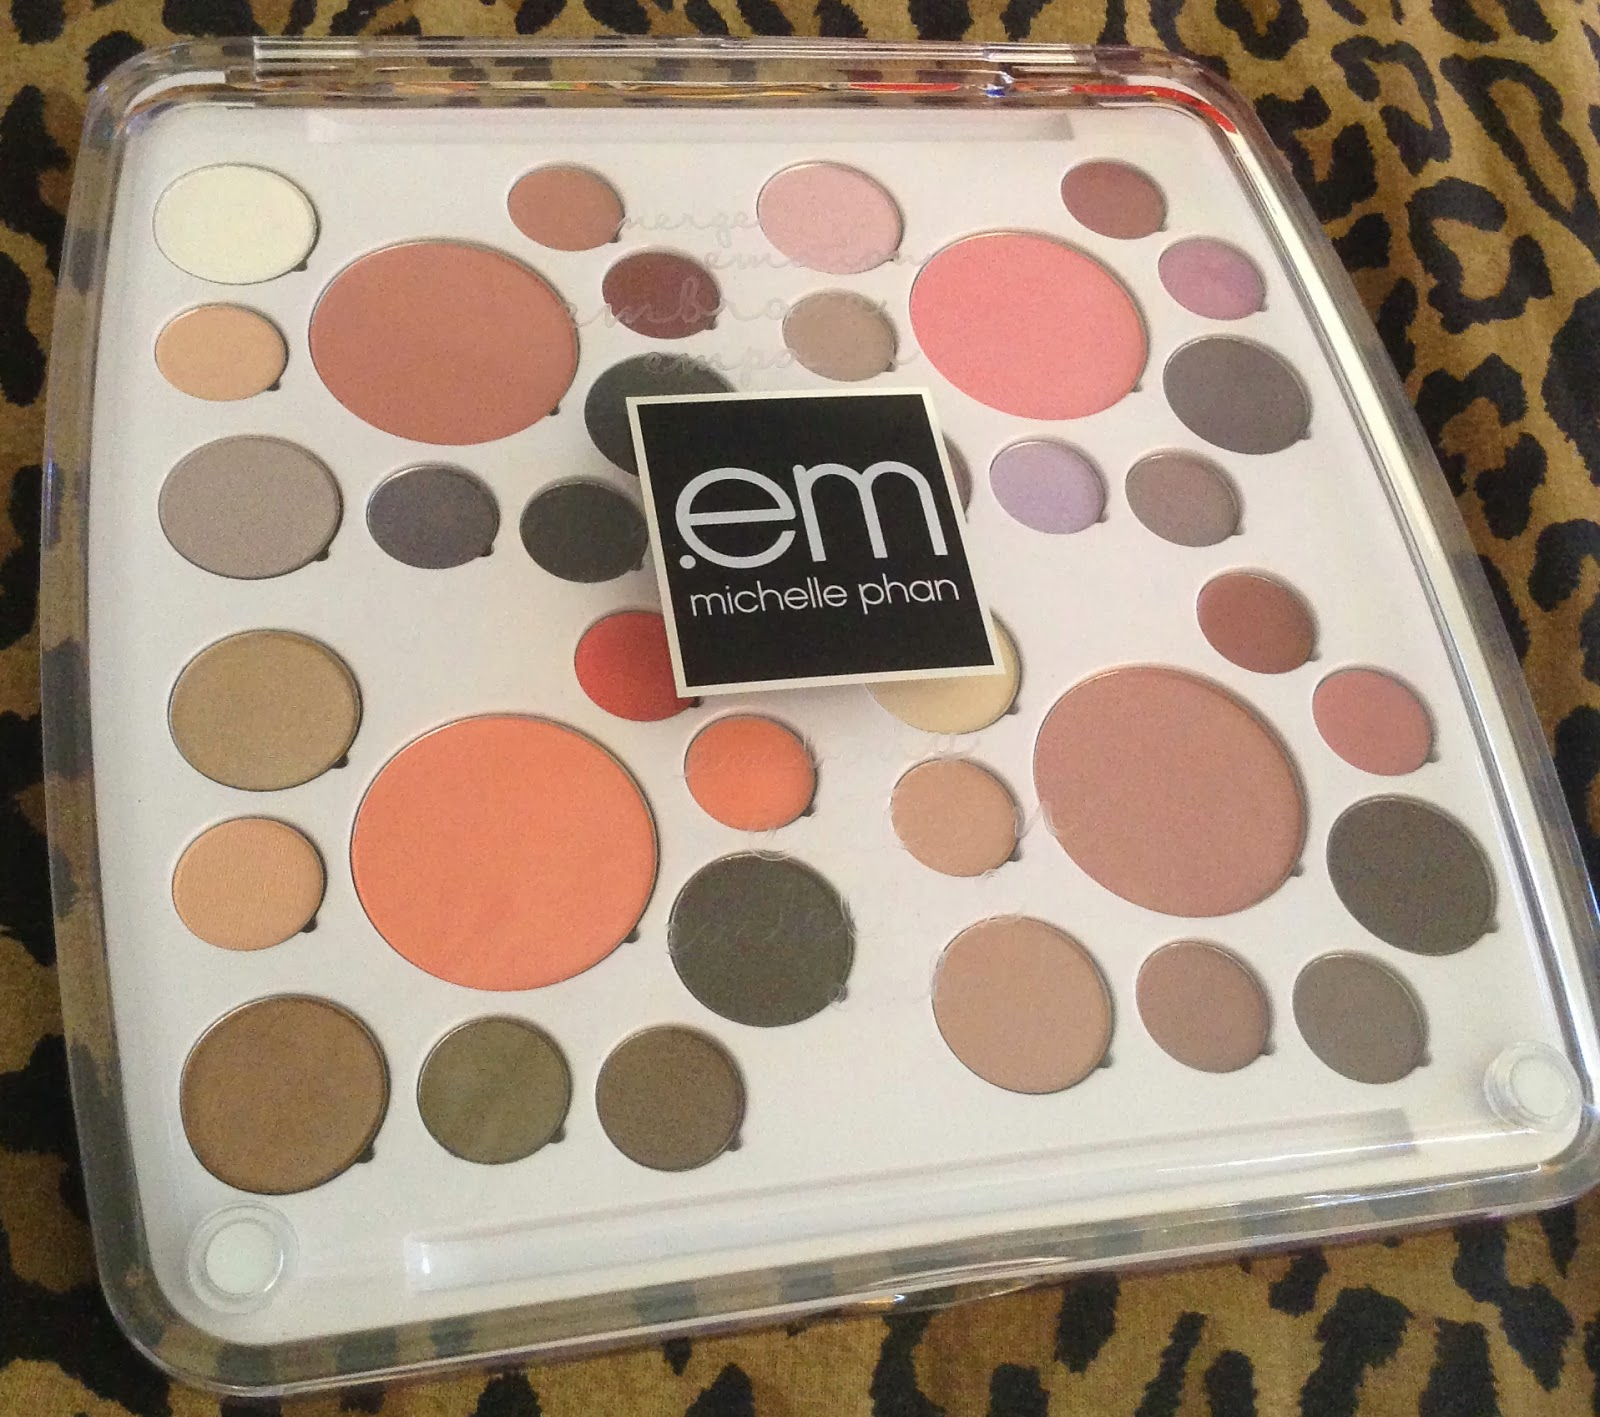 strawberryxjammie em cosmetics by michelle phan career life em cosmetics by michelle phan career life life palette initial review and swatches